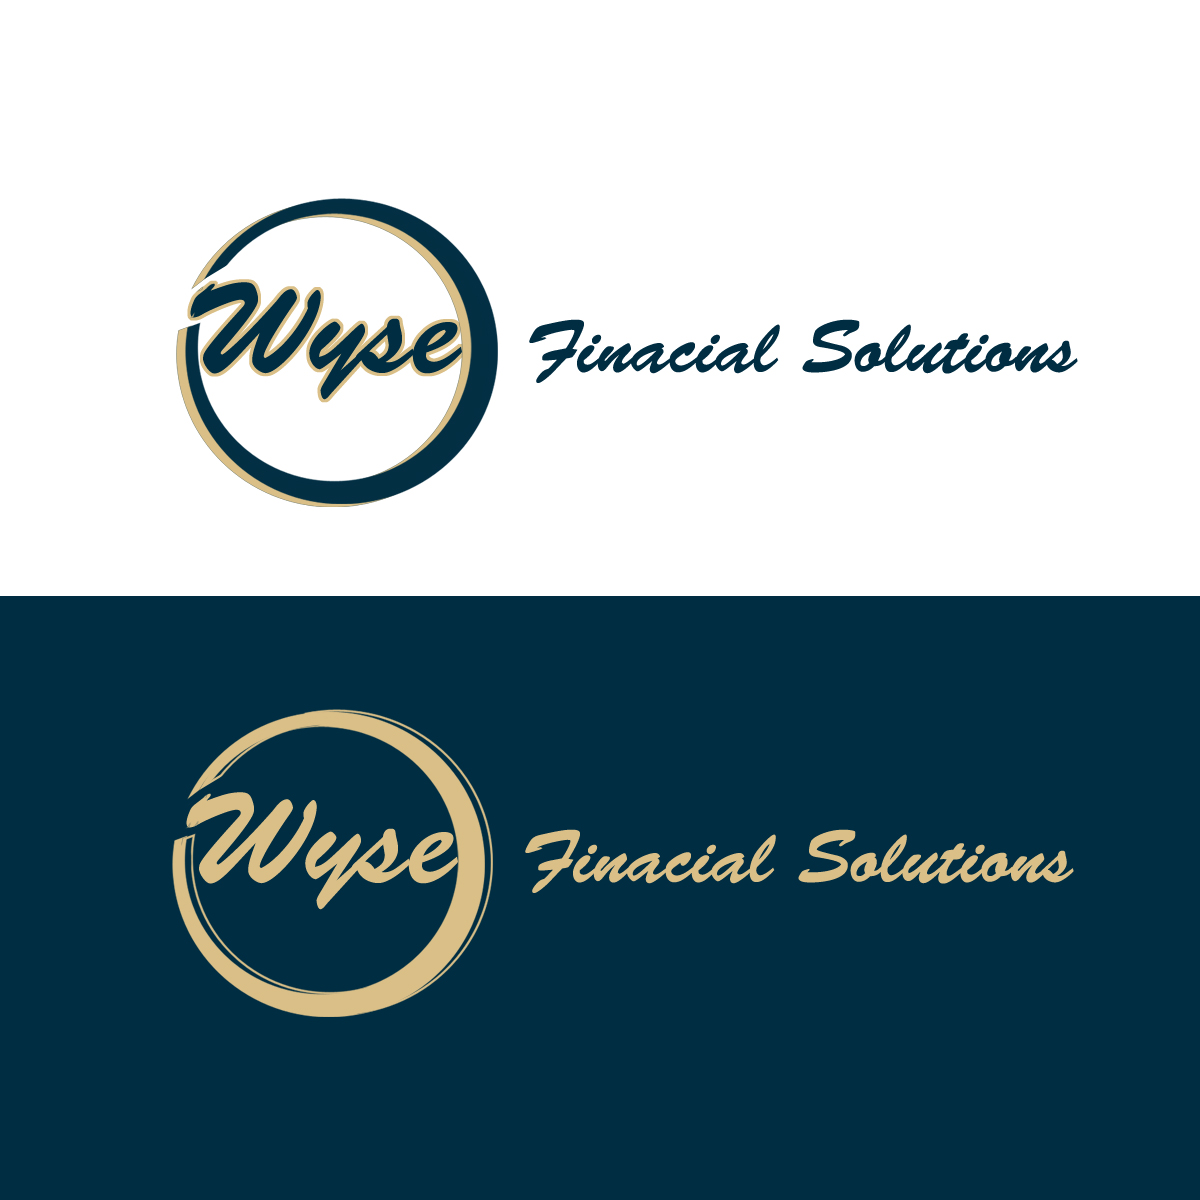 Logo Design by Private User - Entry No. 144 in the Logo Design Contest Fun Logo Design for Wyse Financial Solutions.